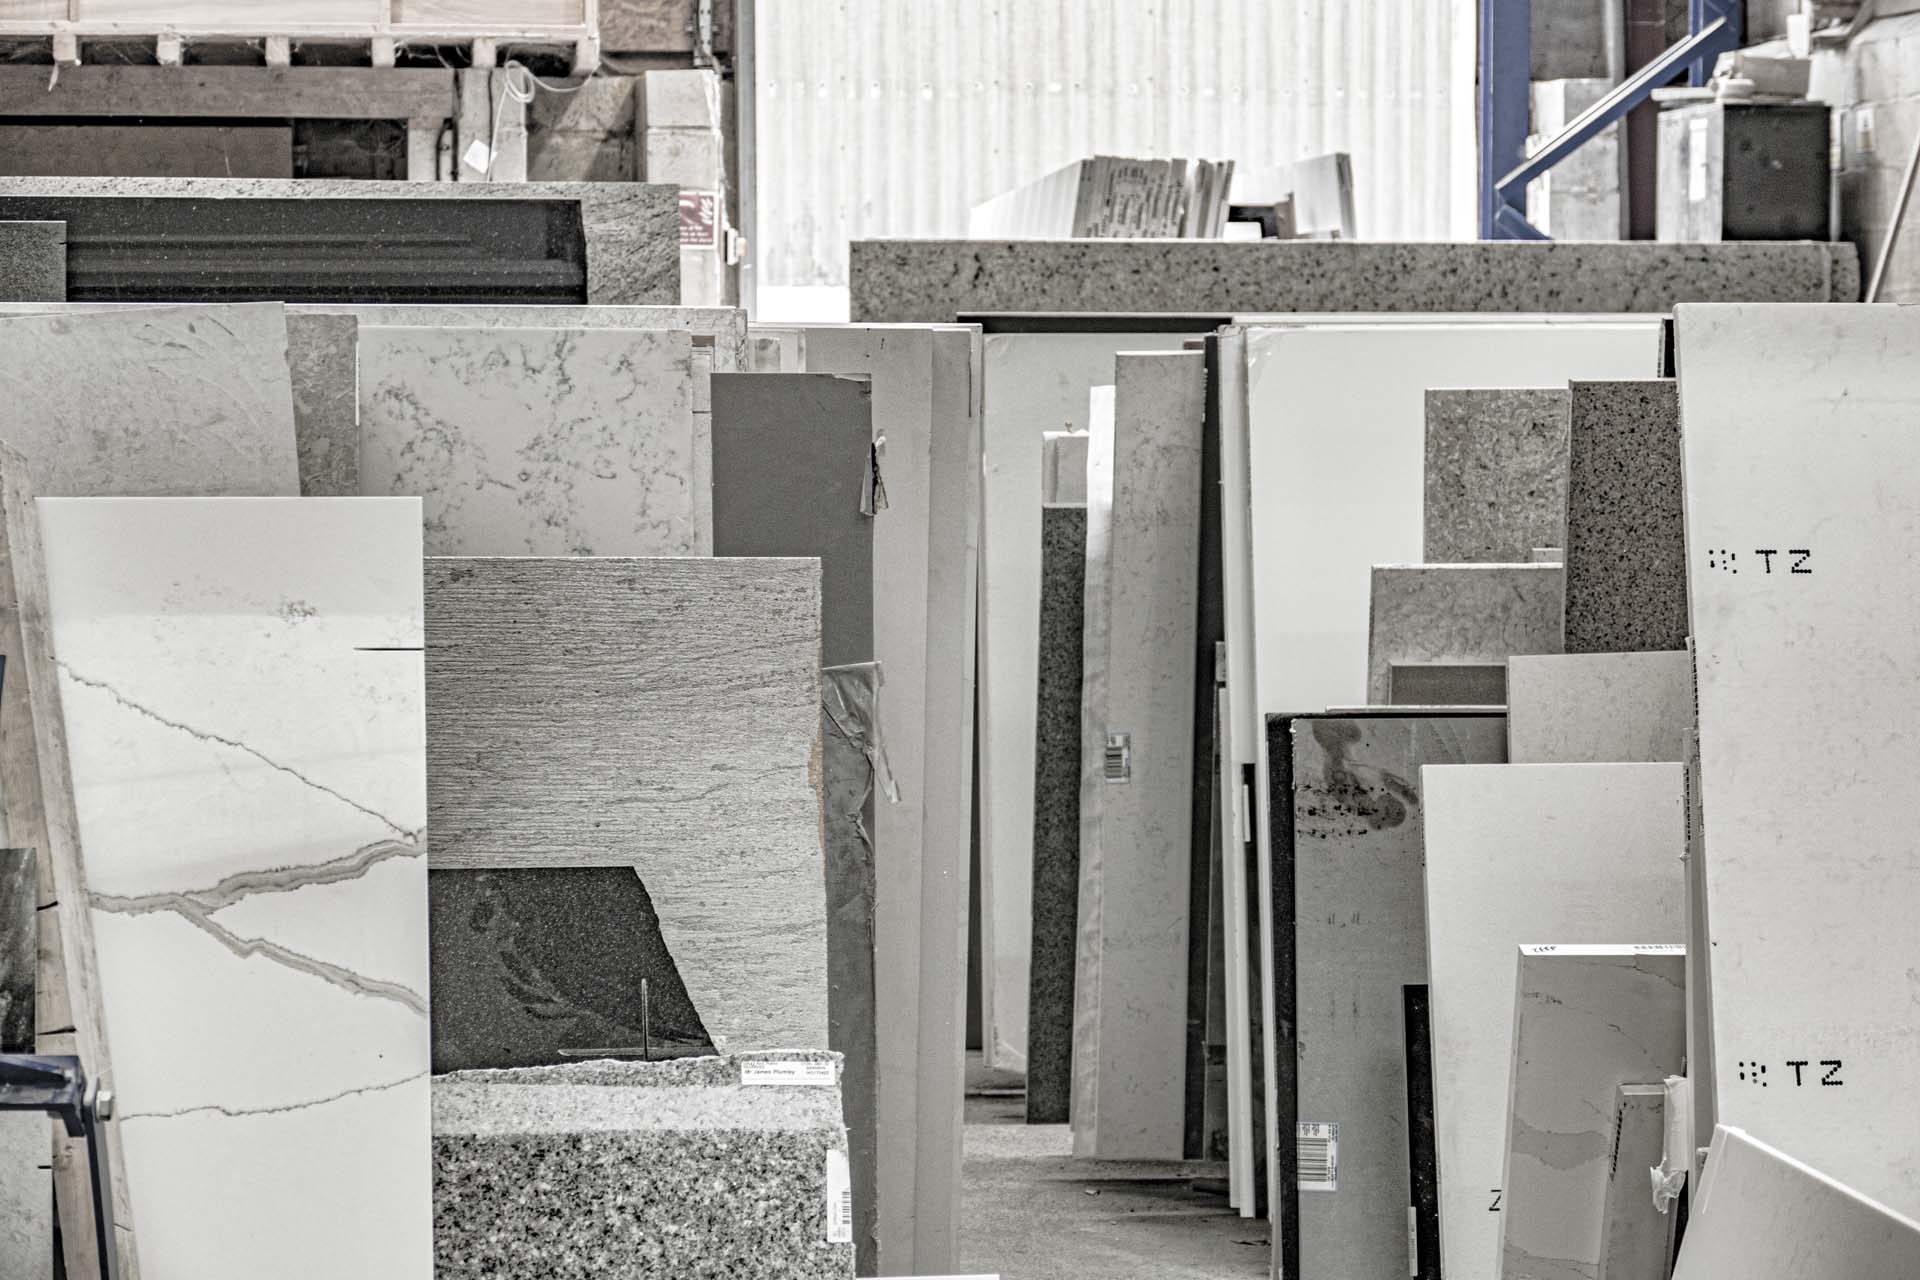 Granite worktops quartz supply issues port building materials stone cement sand joinery 153247 a